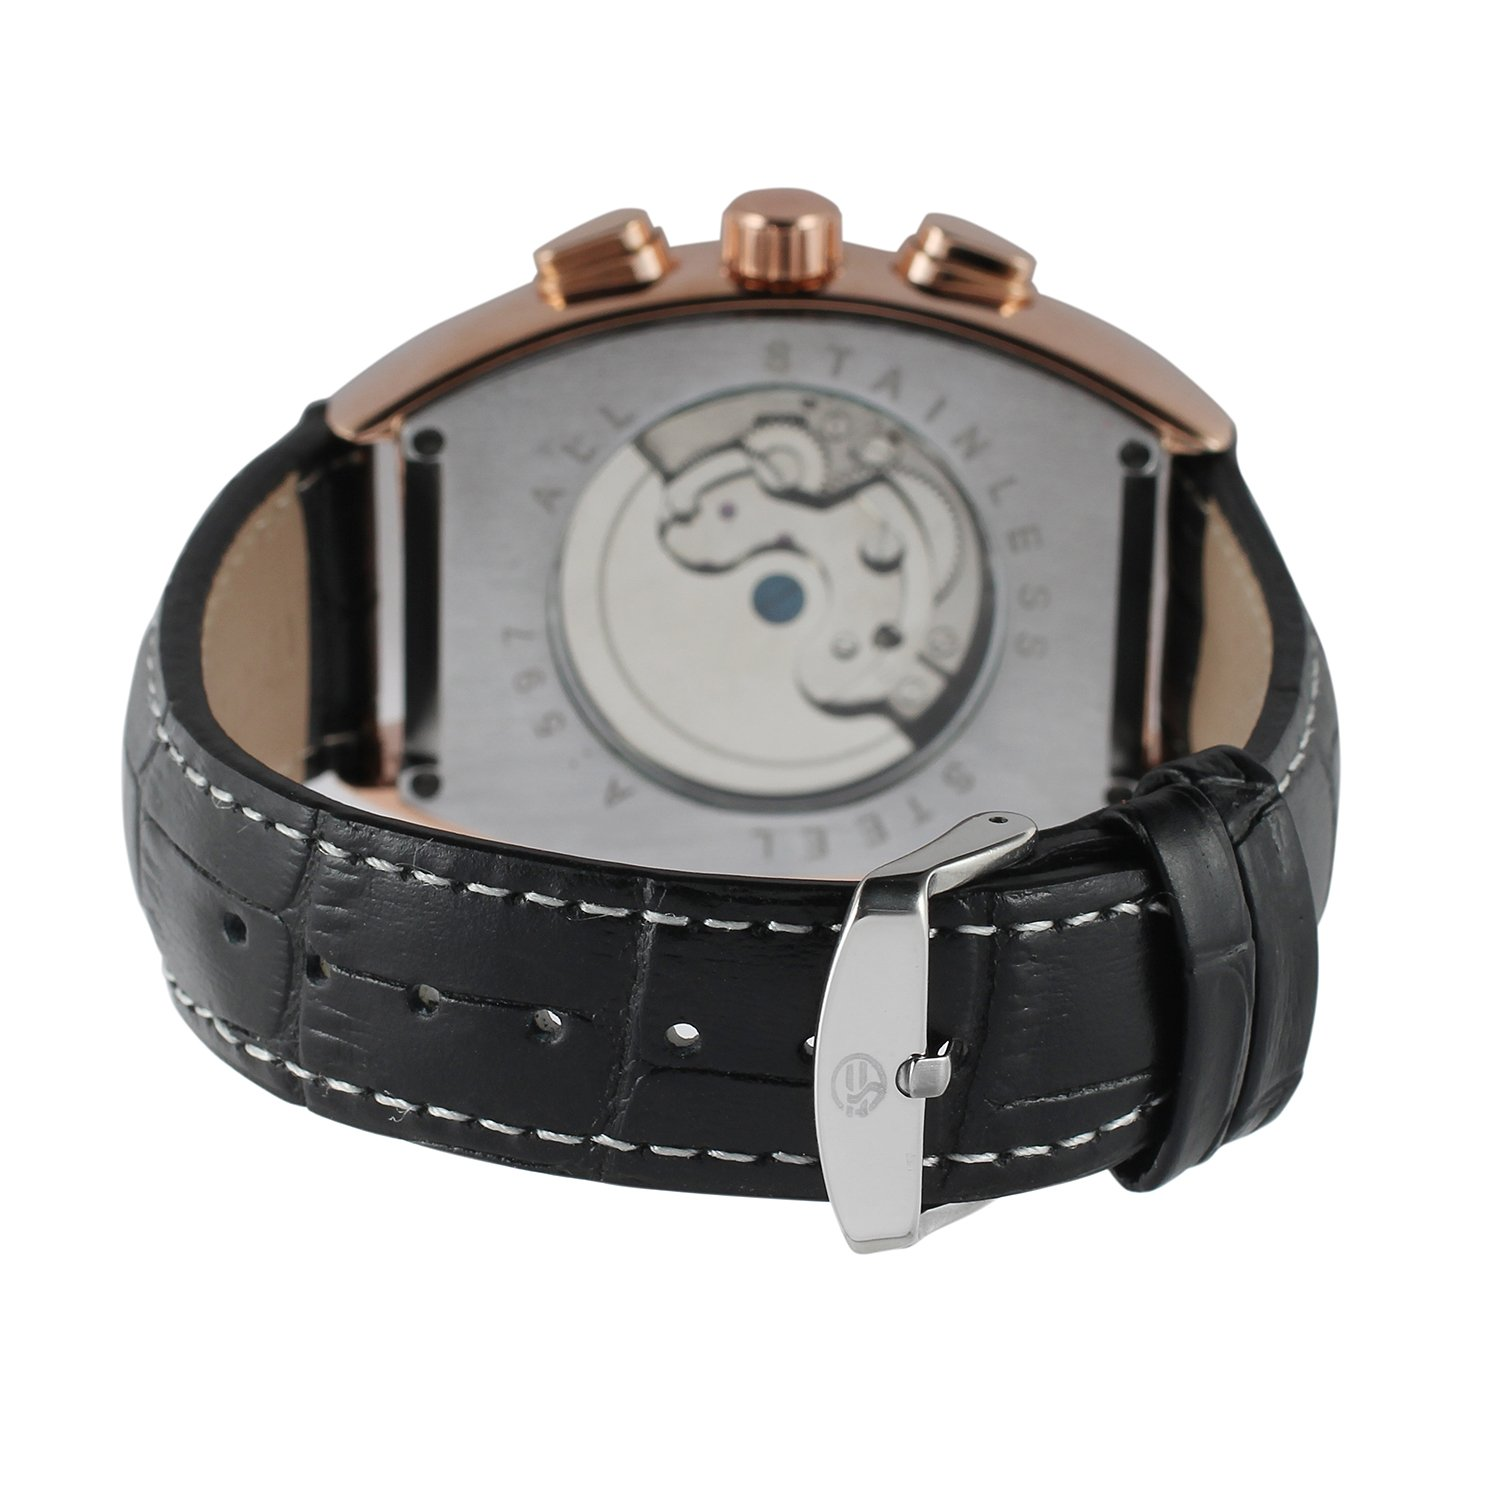 Forsining Men's Automatic Self-winding Tourbillon Calendar Brand Learher Strap Collectiton Watch FSG9409M3R5 by FORSINING (Image #4)